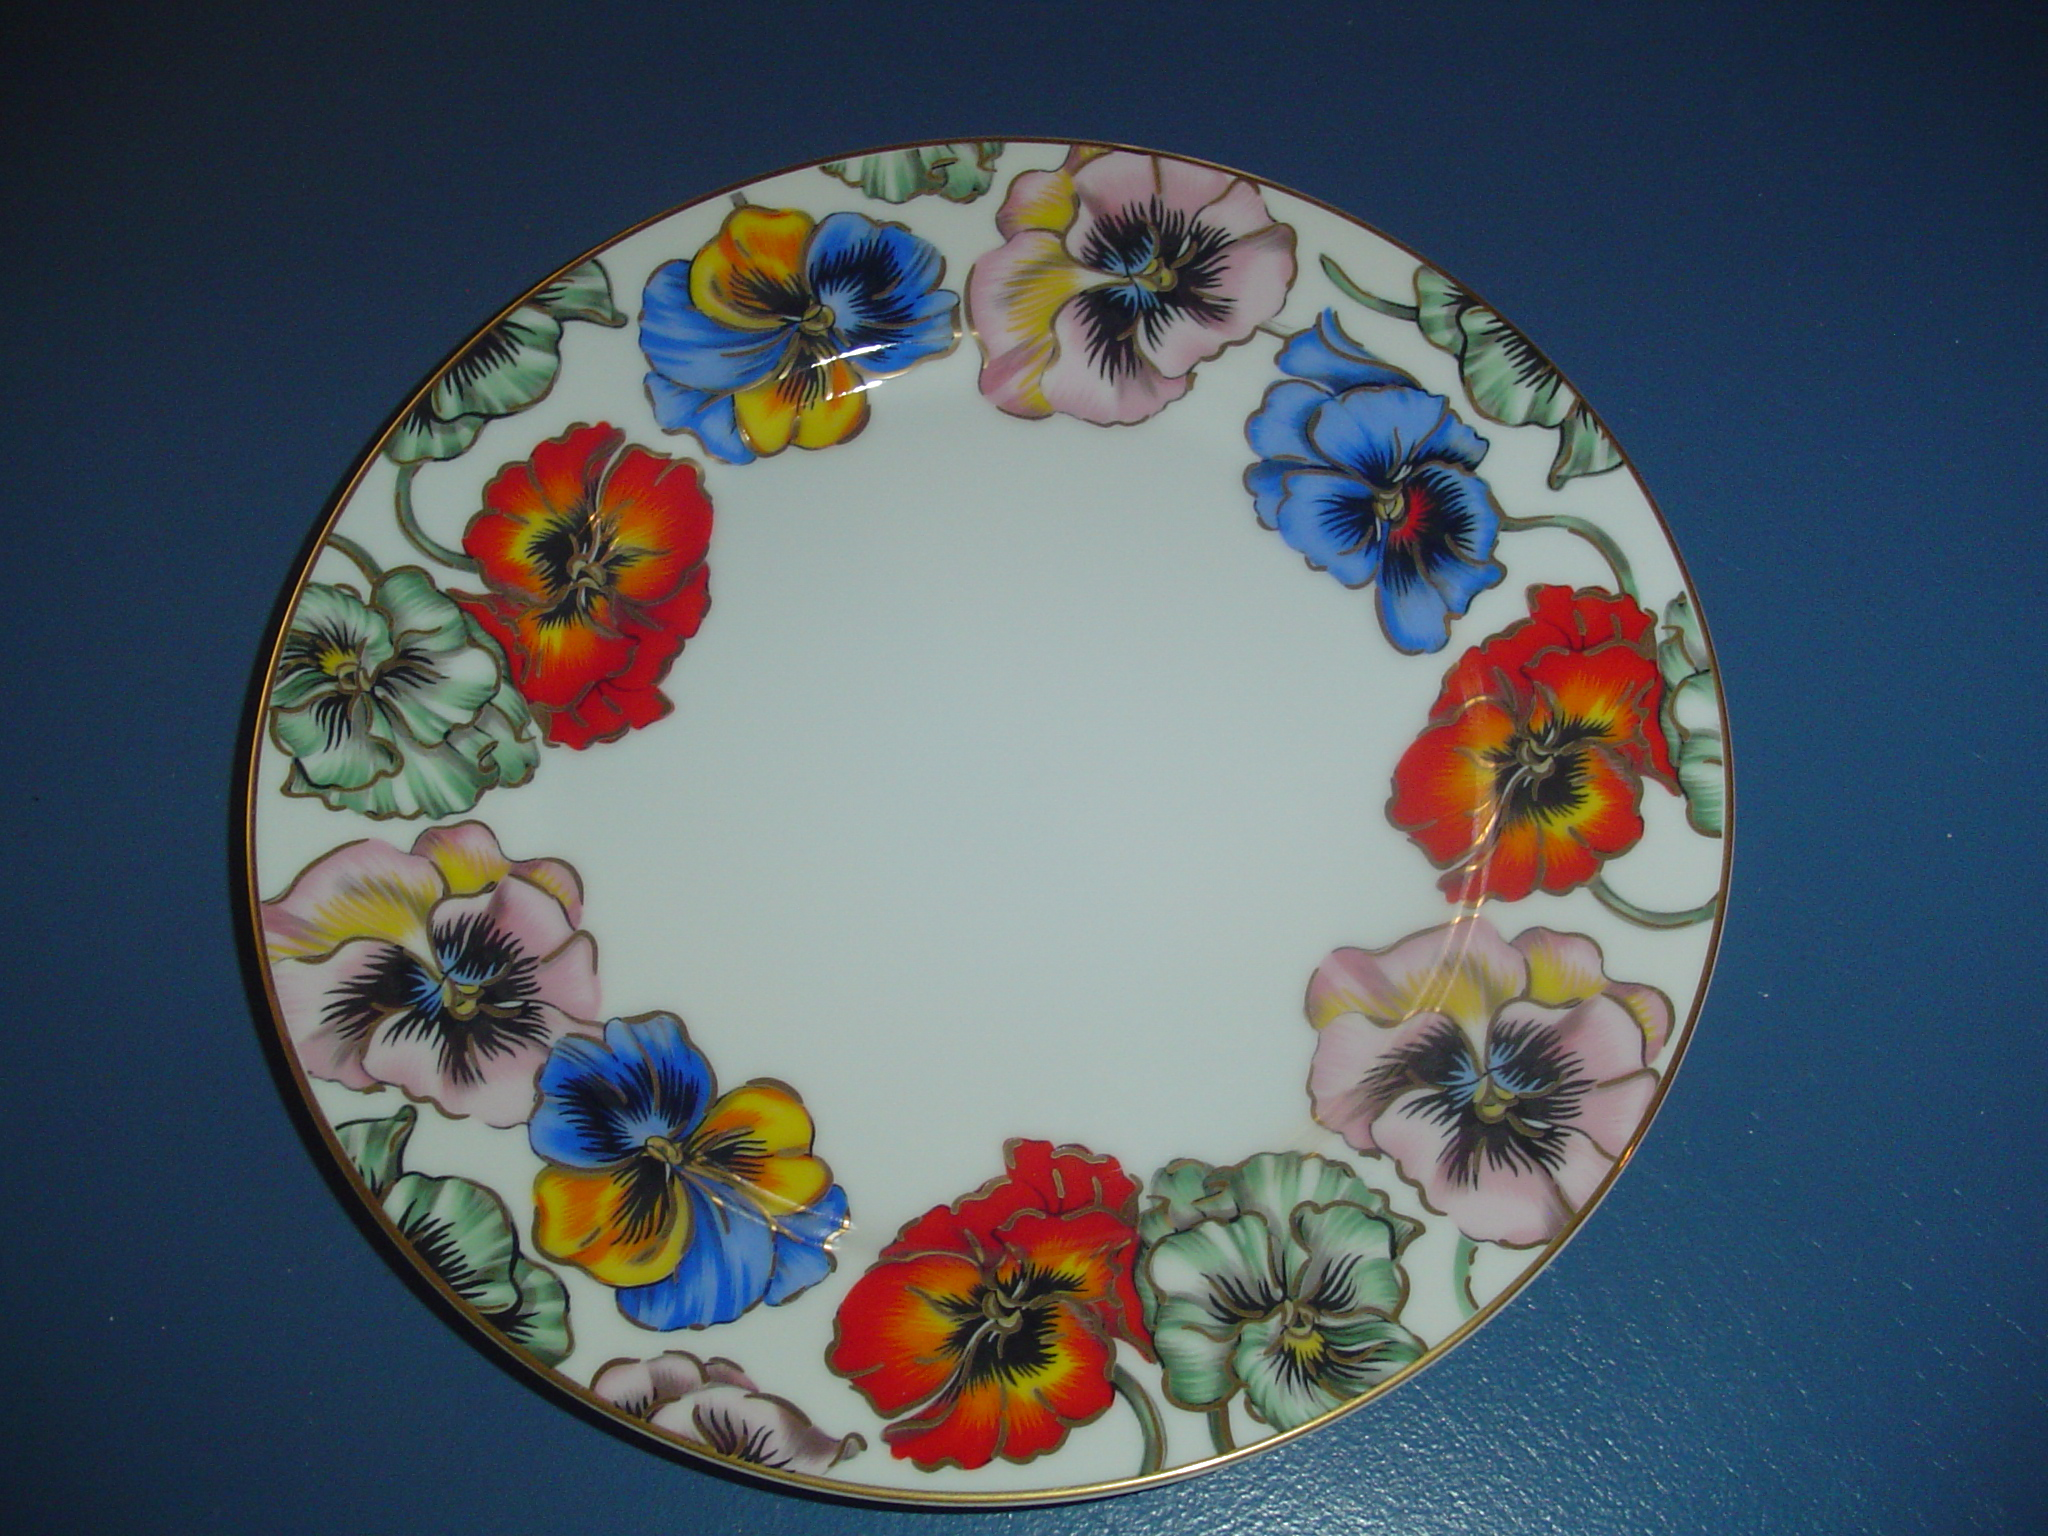 NEW Fitz & Floyd Pansies Dinner Plates Reduced 40%